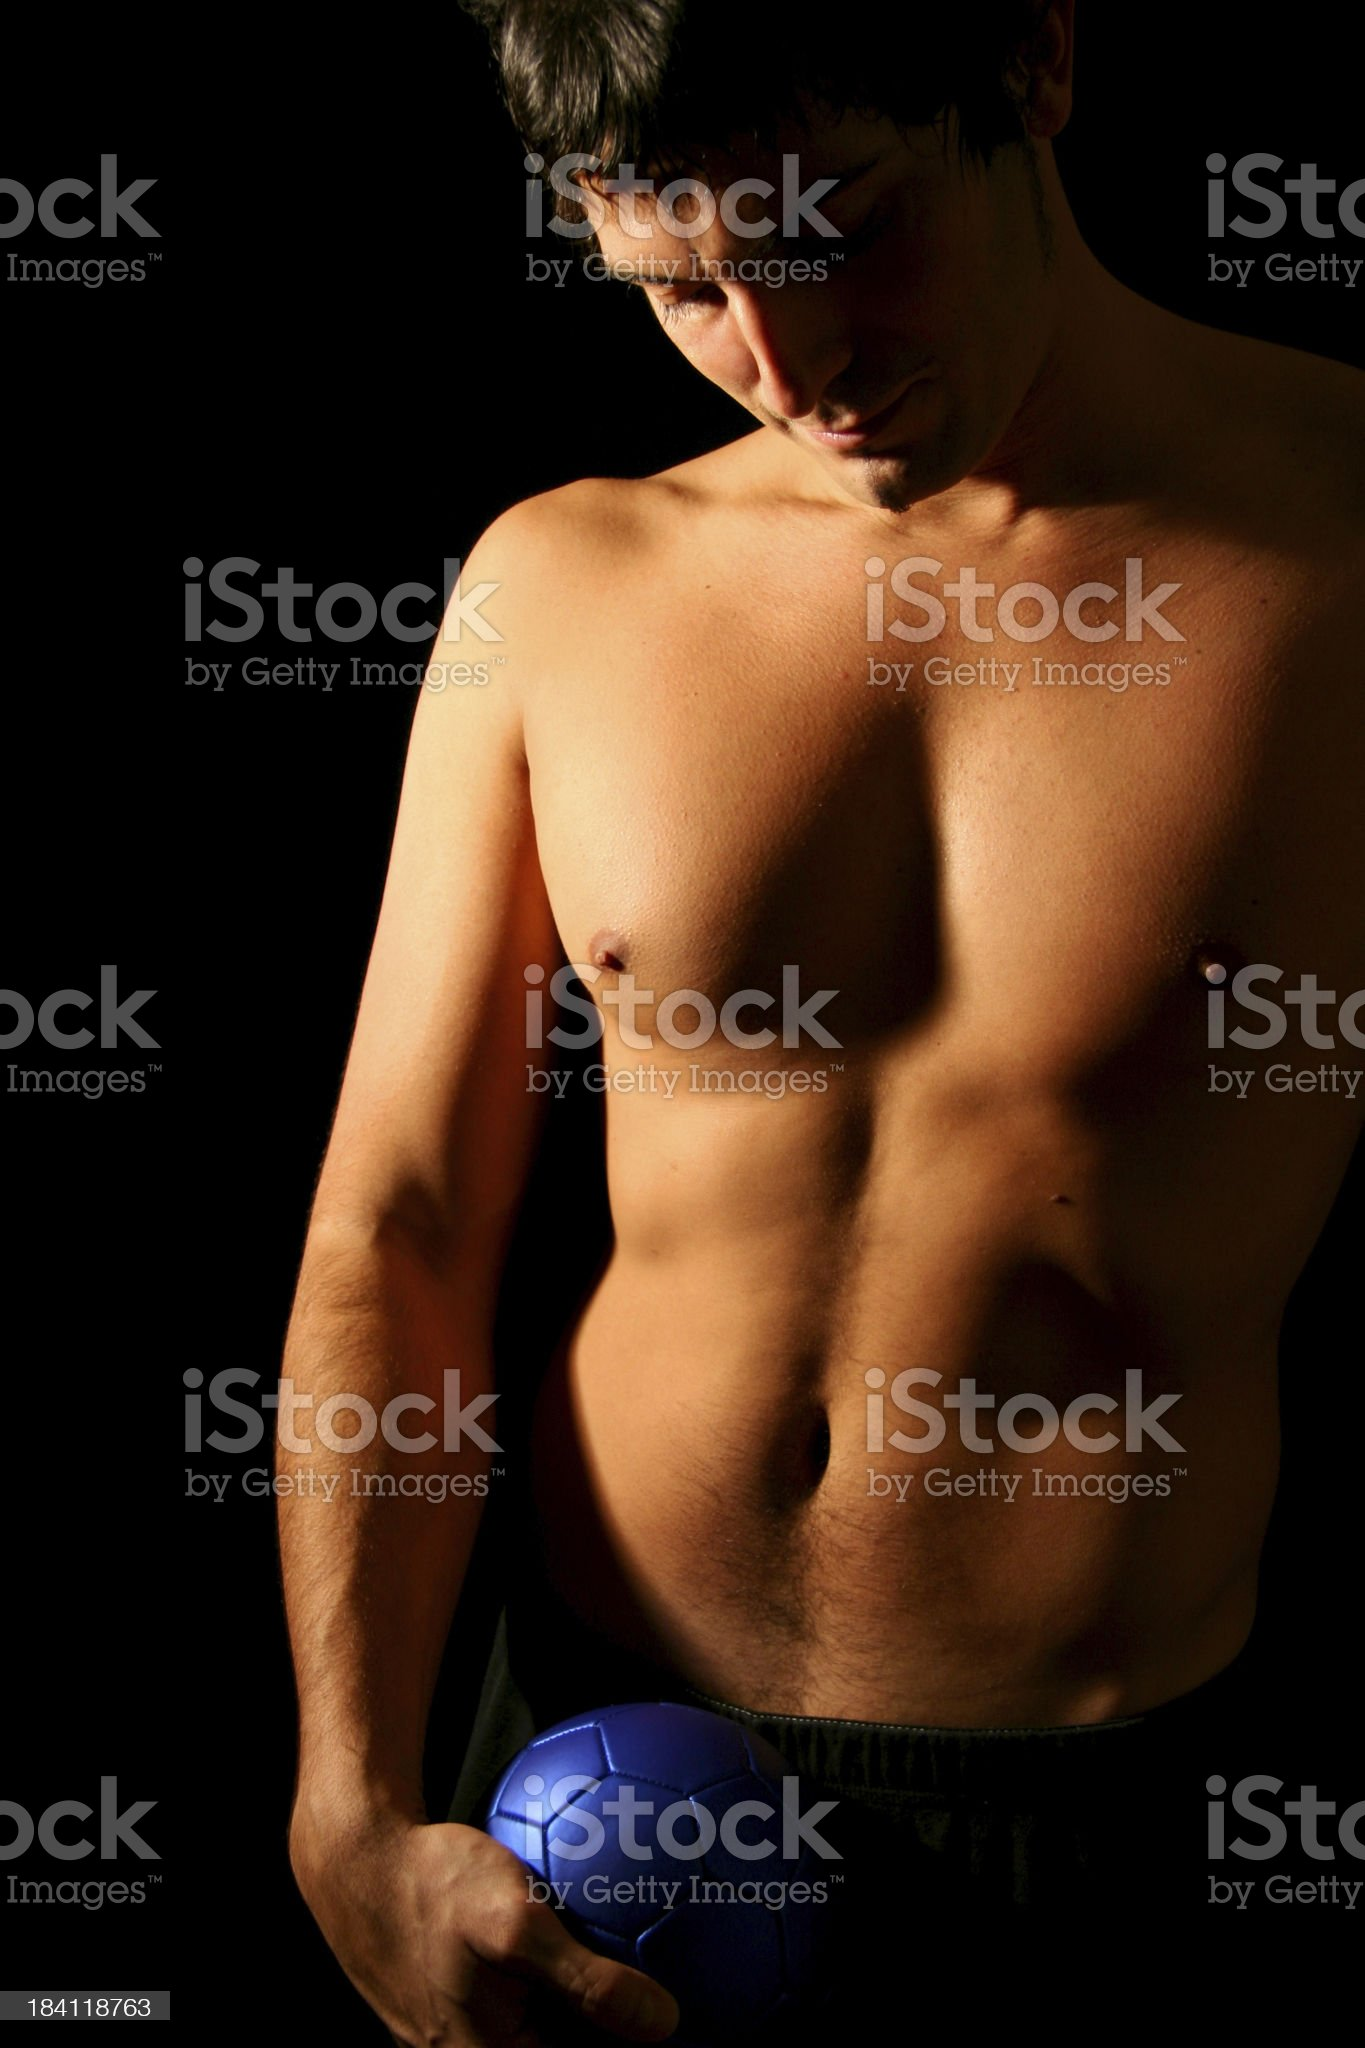 Sexy Man with a Blue Soccer Ball royalty-free stock photo